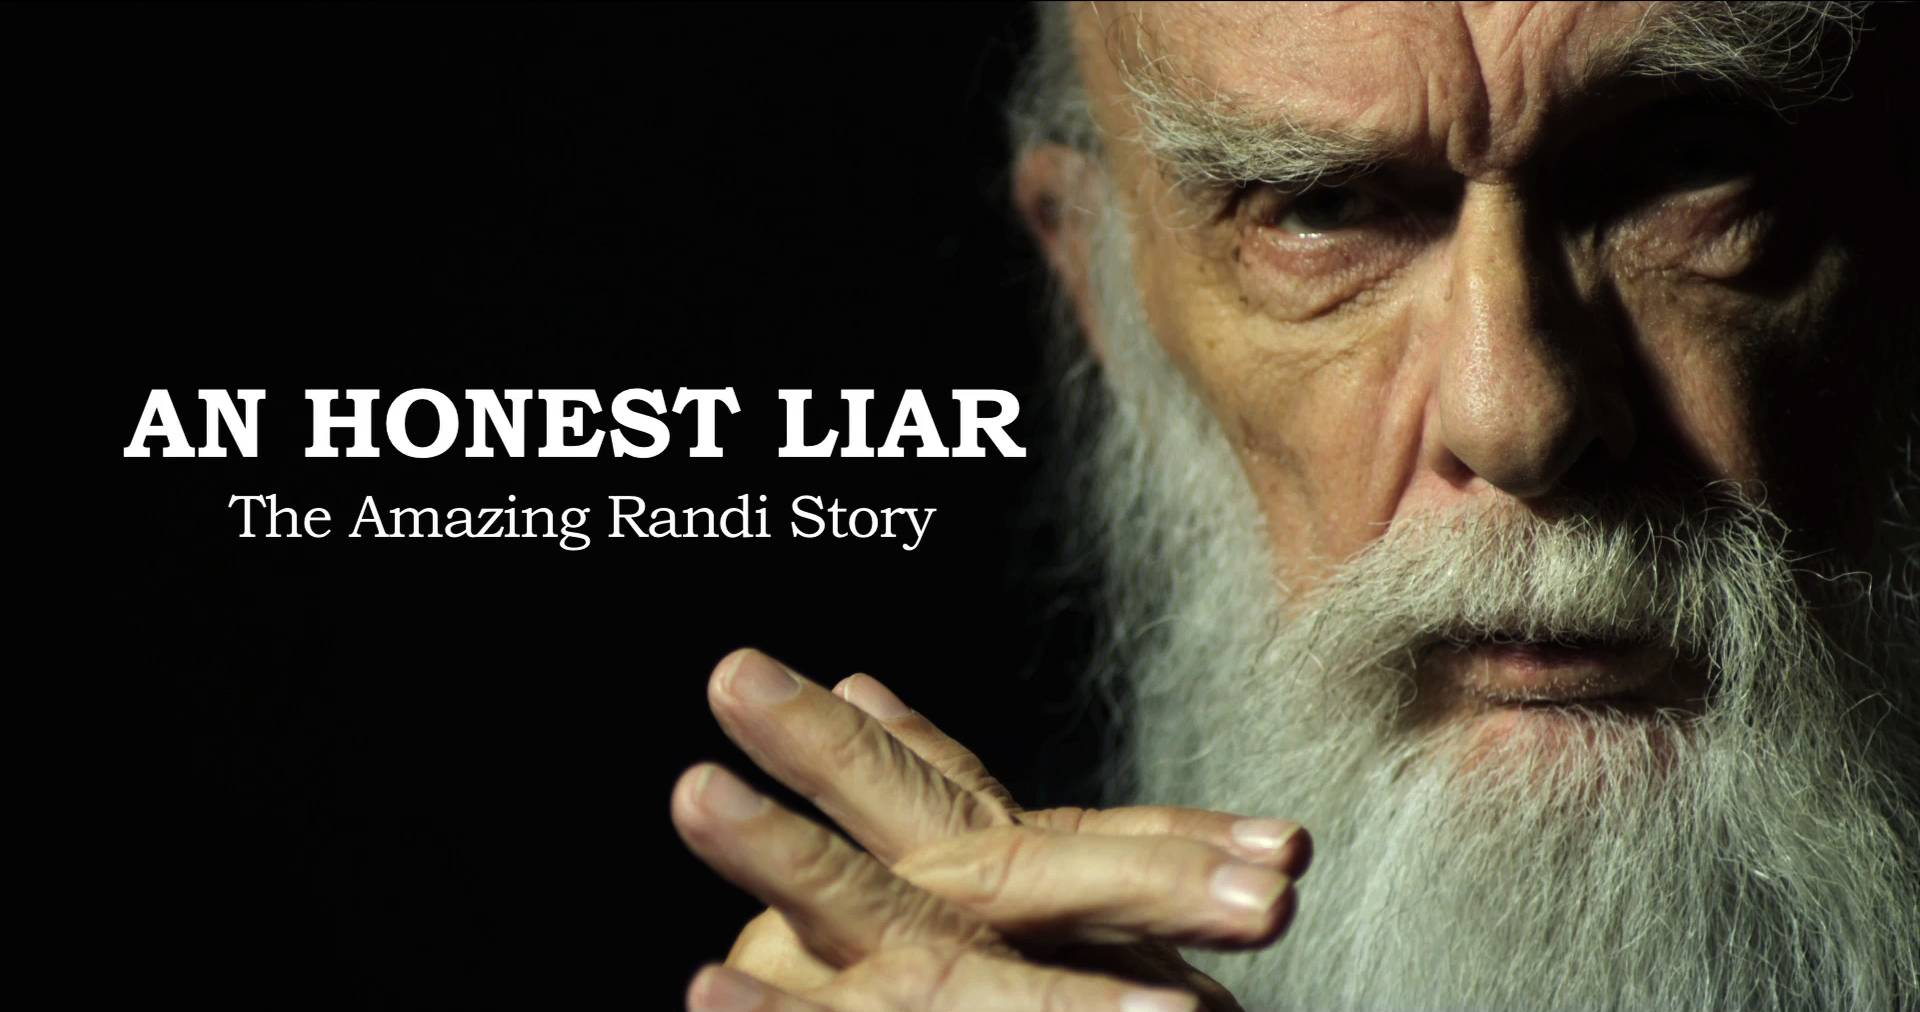 43. From the Desk of James Randi